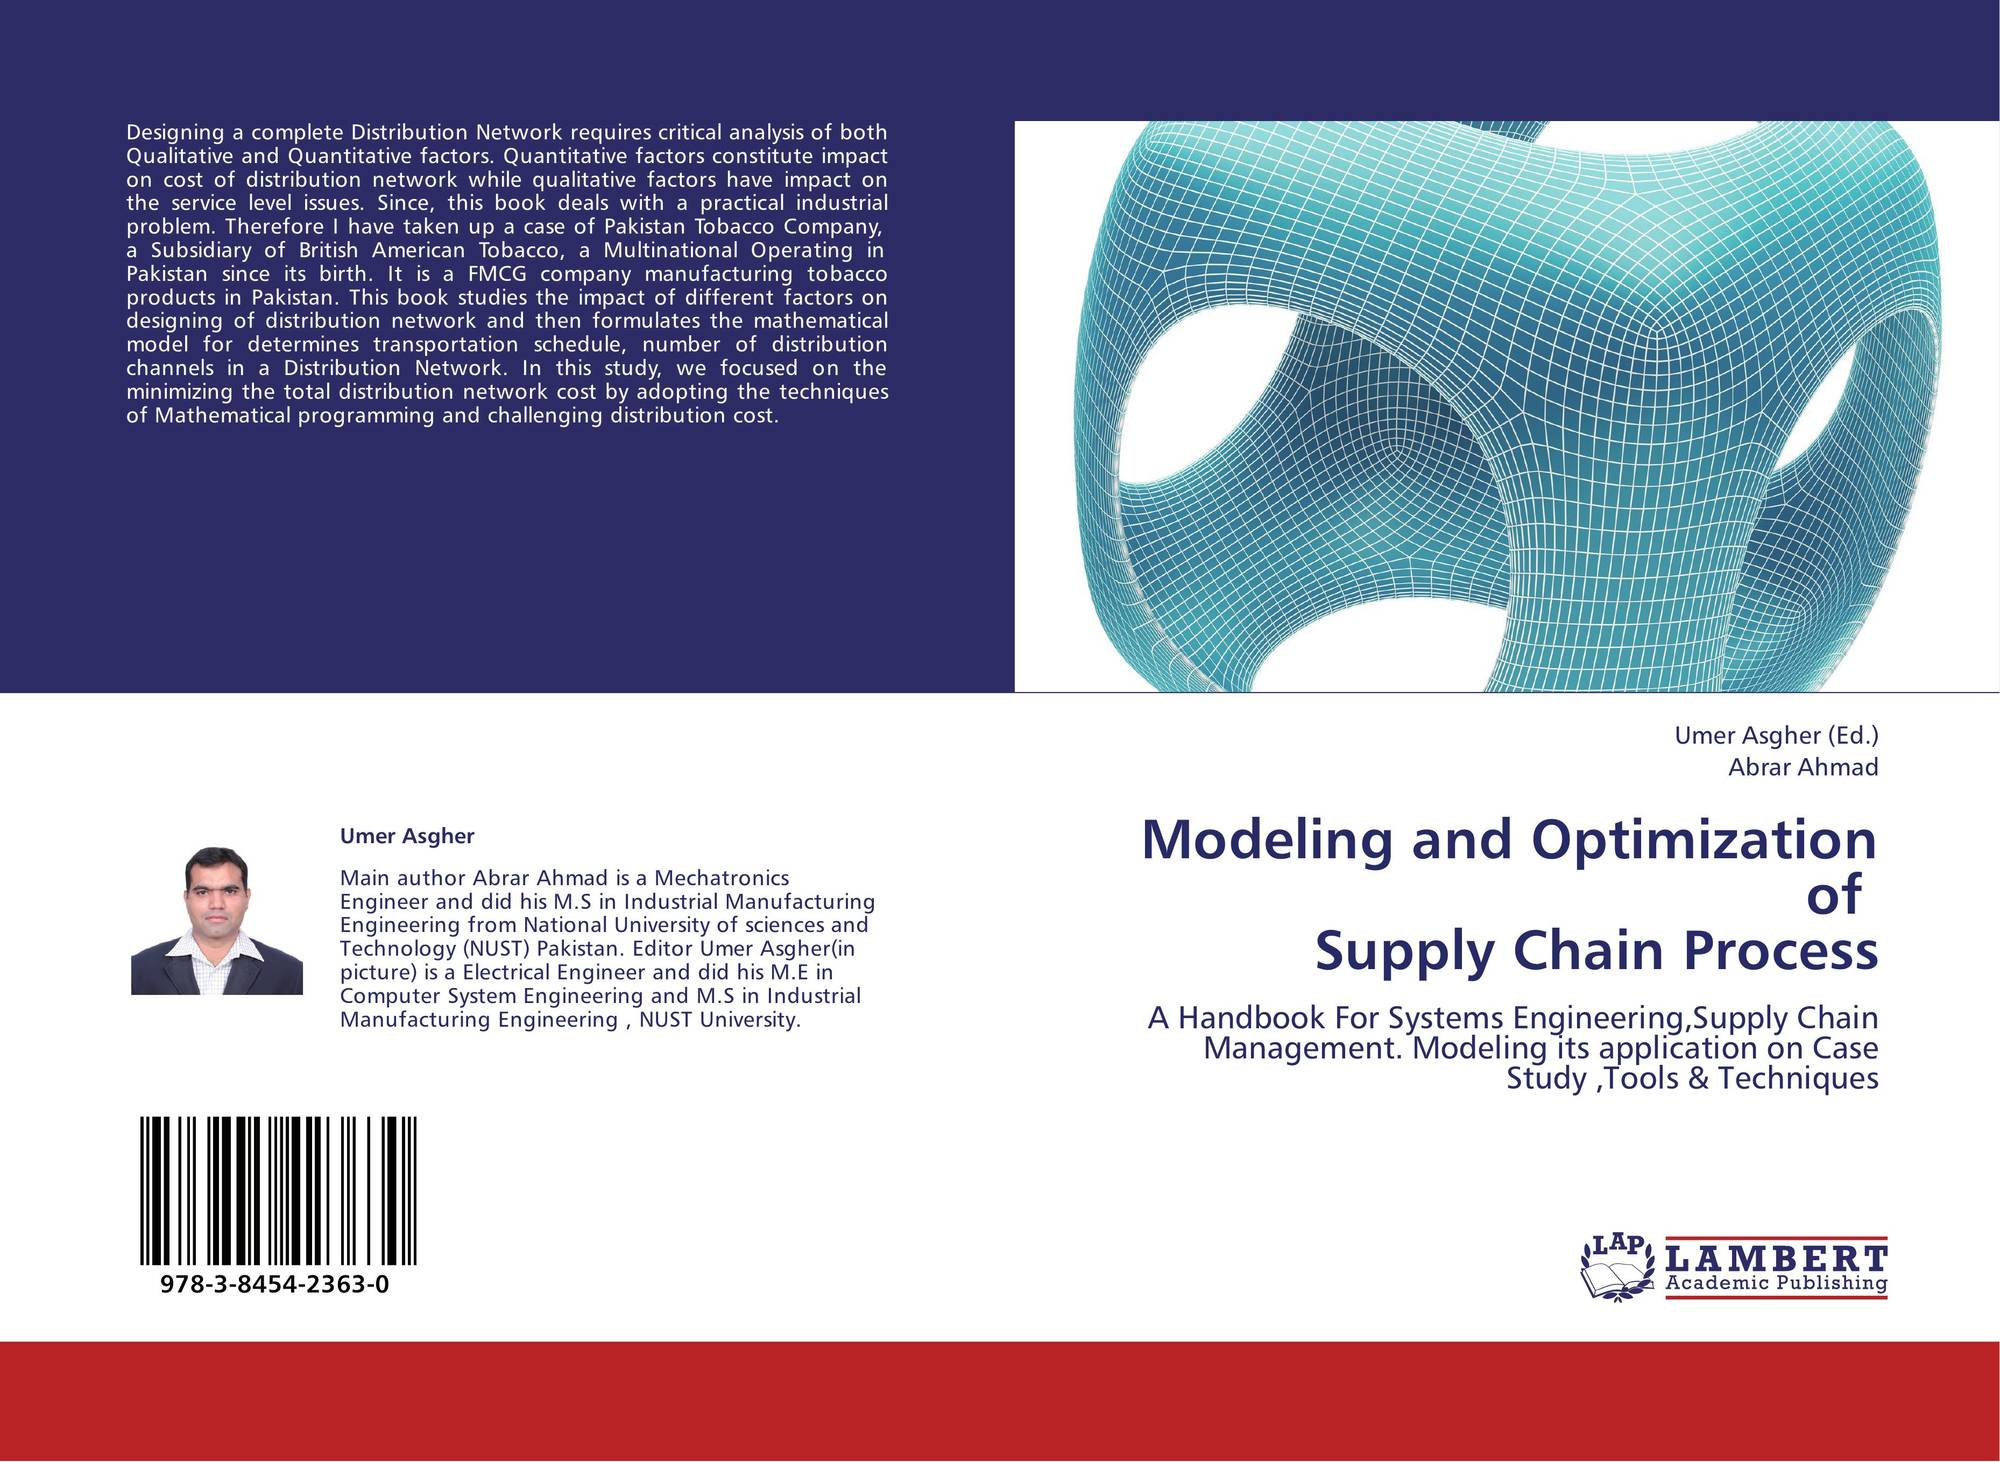 modeling and simulation of the supply chain Supply chain management has been defined as the design, planning, execution, control, and monitoring of supply chain activities with the objective of creating net value, building a competitive infrastructure, leveraging worldwide logistics, synchronizing supply with demand and measuring performance globally.